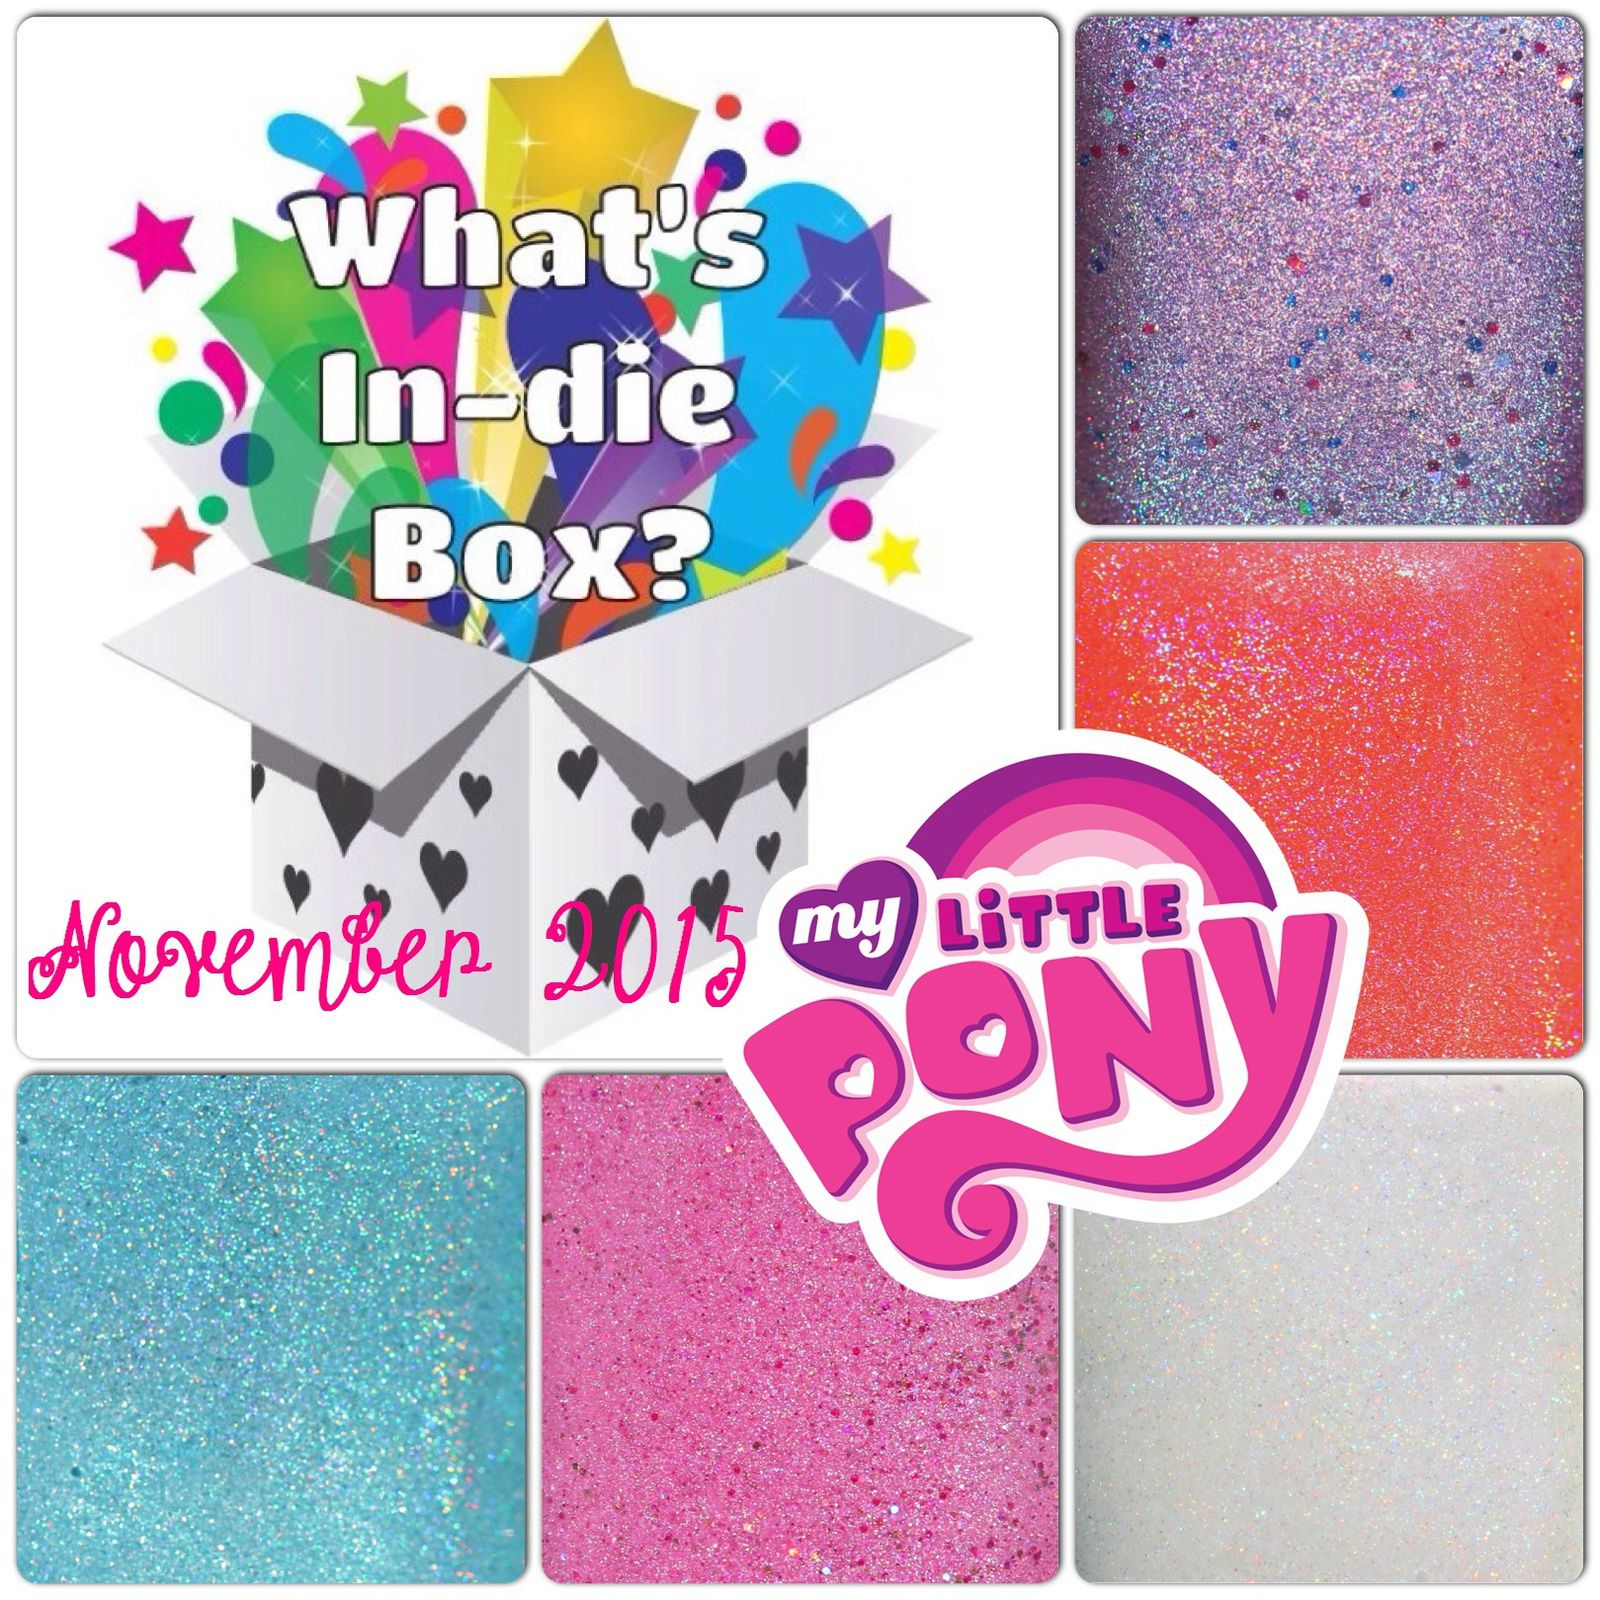 What's Indie Box - November 2015 - My Little Pony